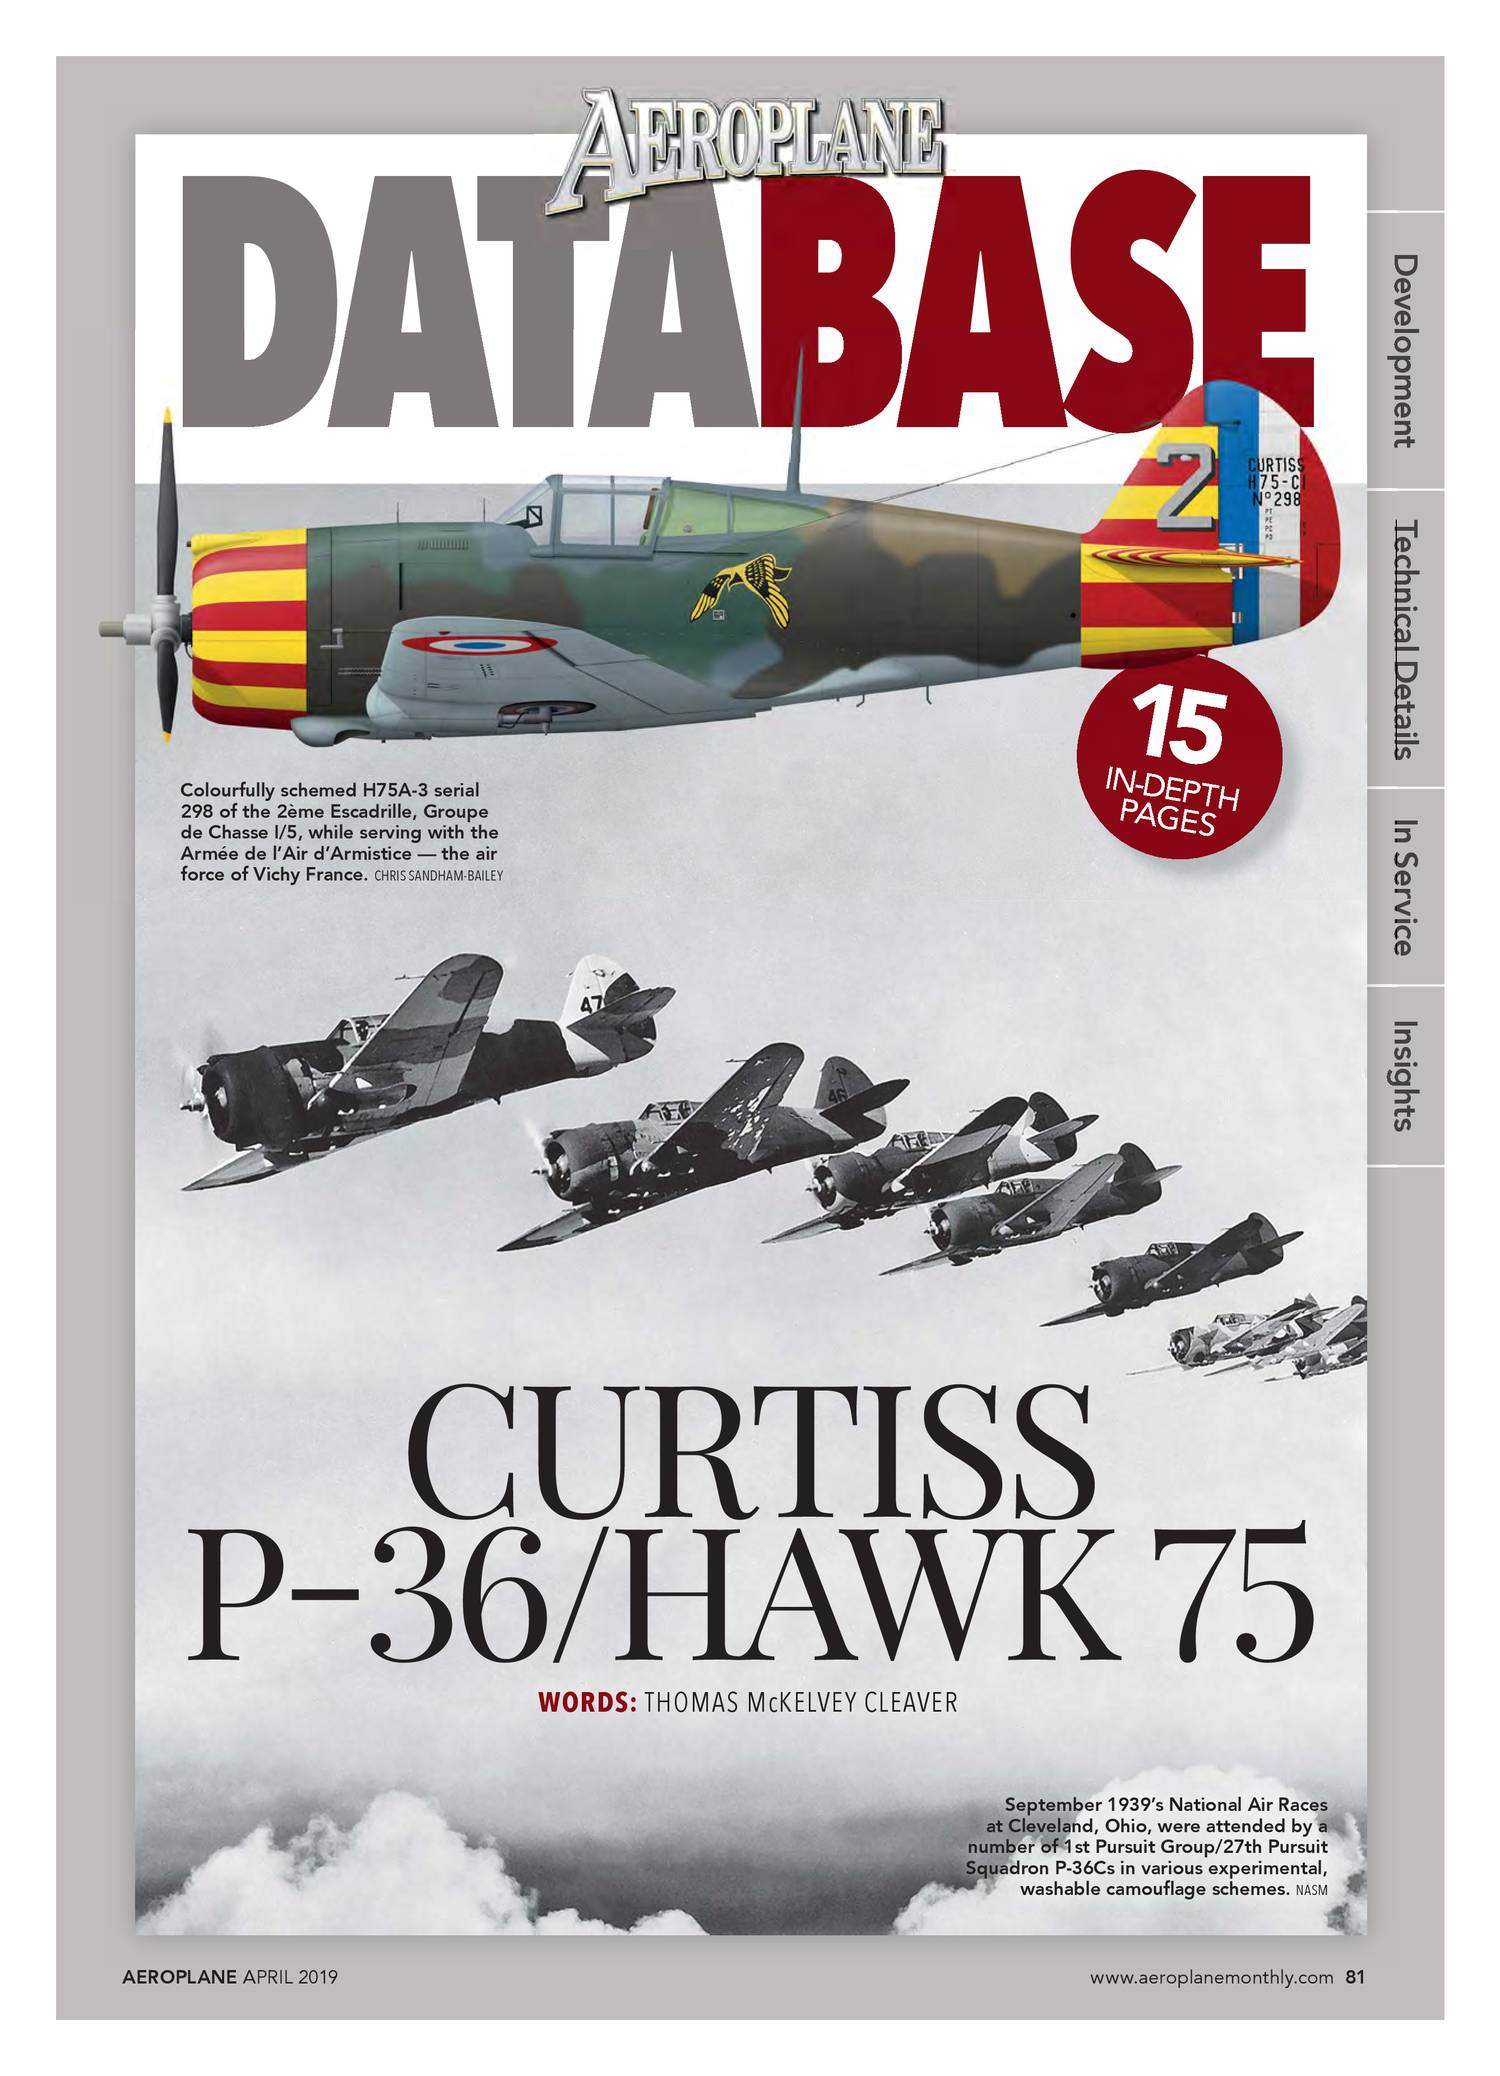 DATABASE CURTISS P-36-HAWK 75 Aeroplane_2019-04 pdf | DocDroid